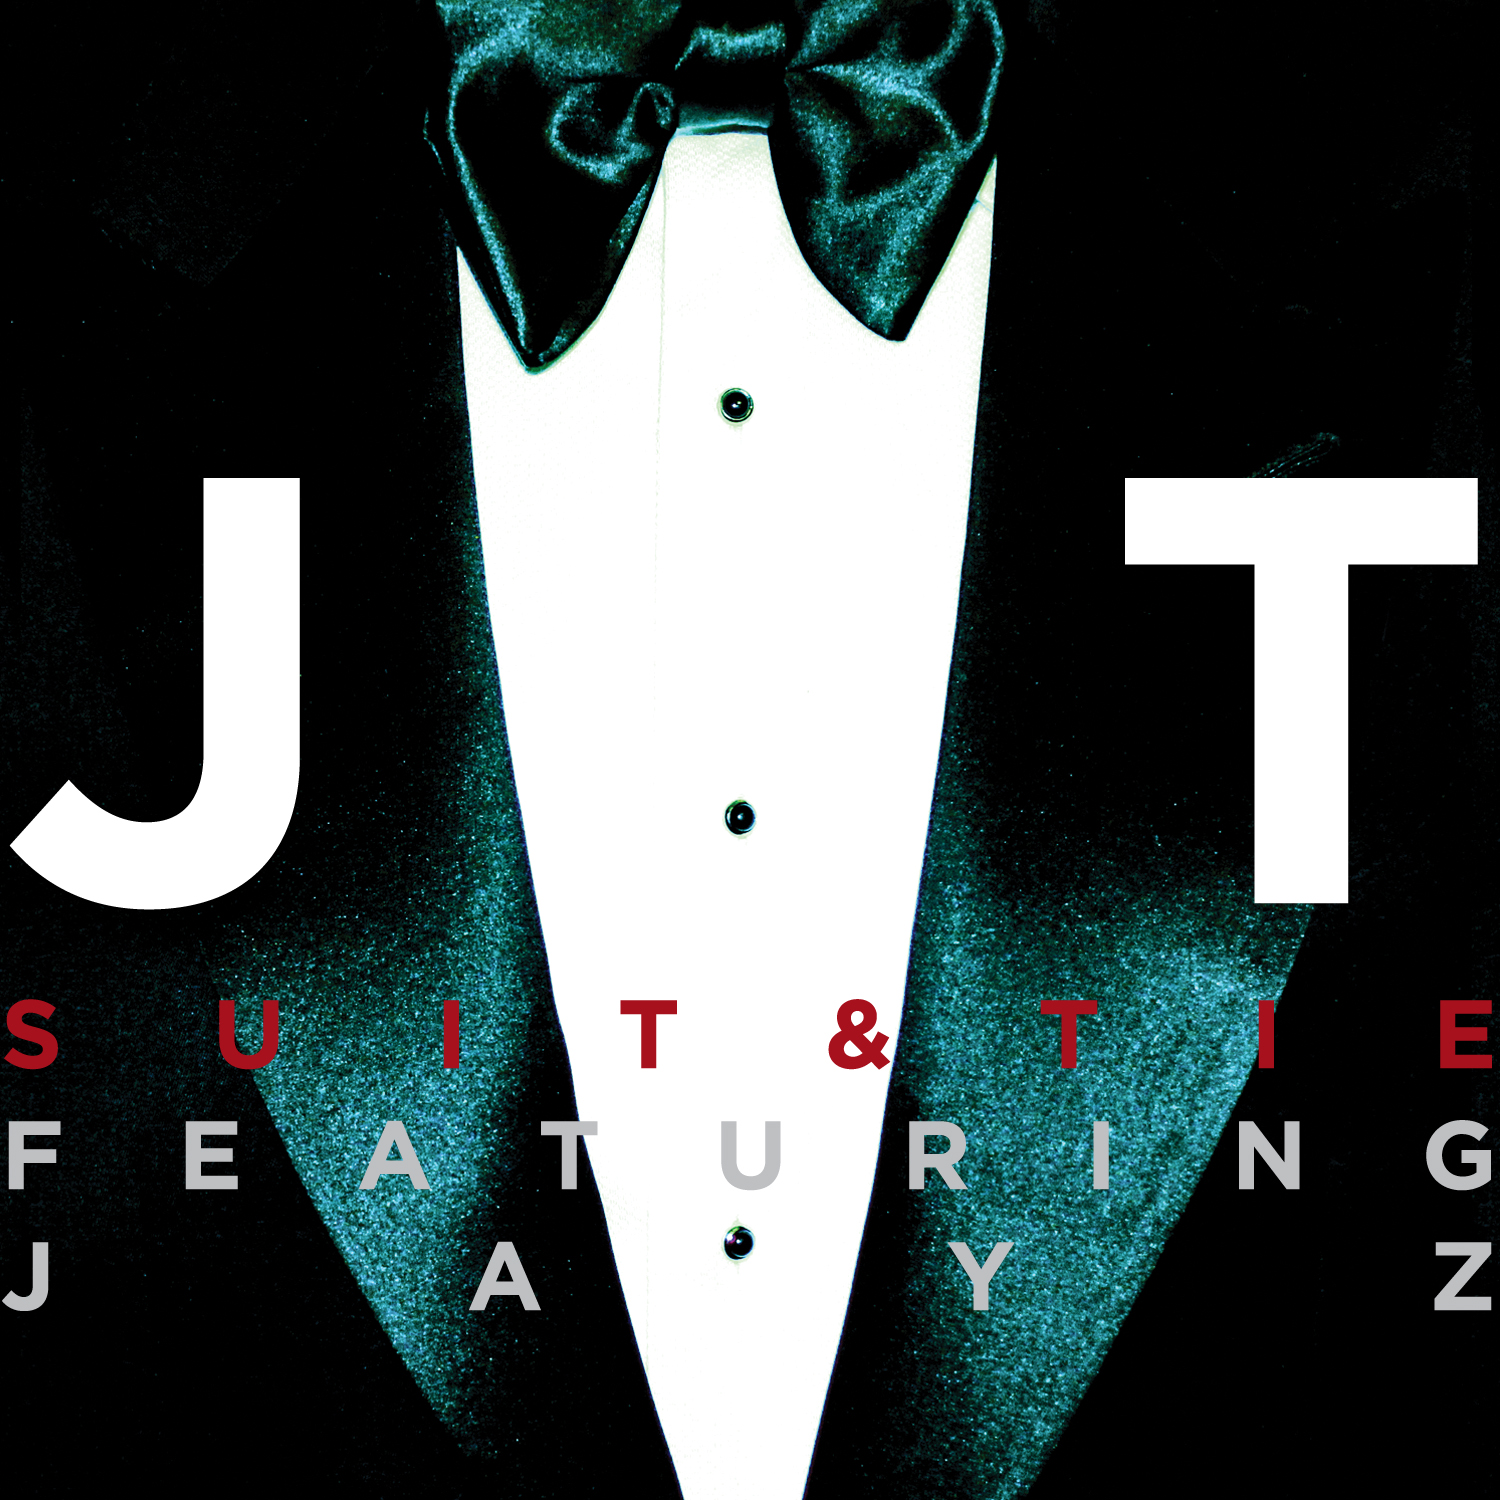 justin timberlake and jay z suit and tie cover